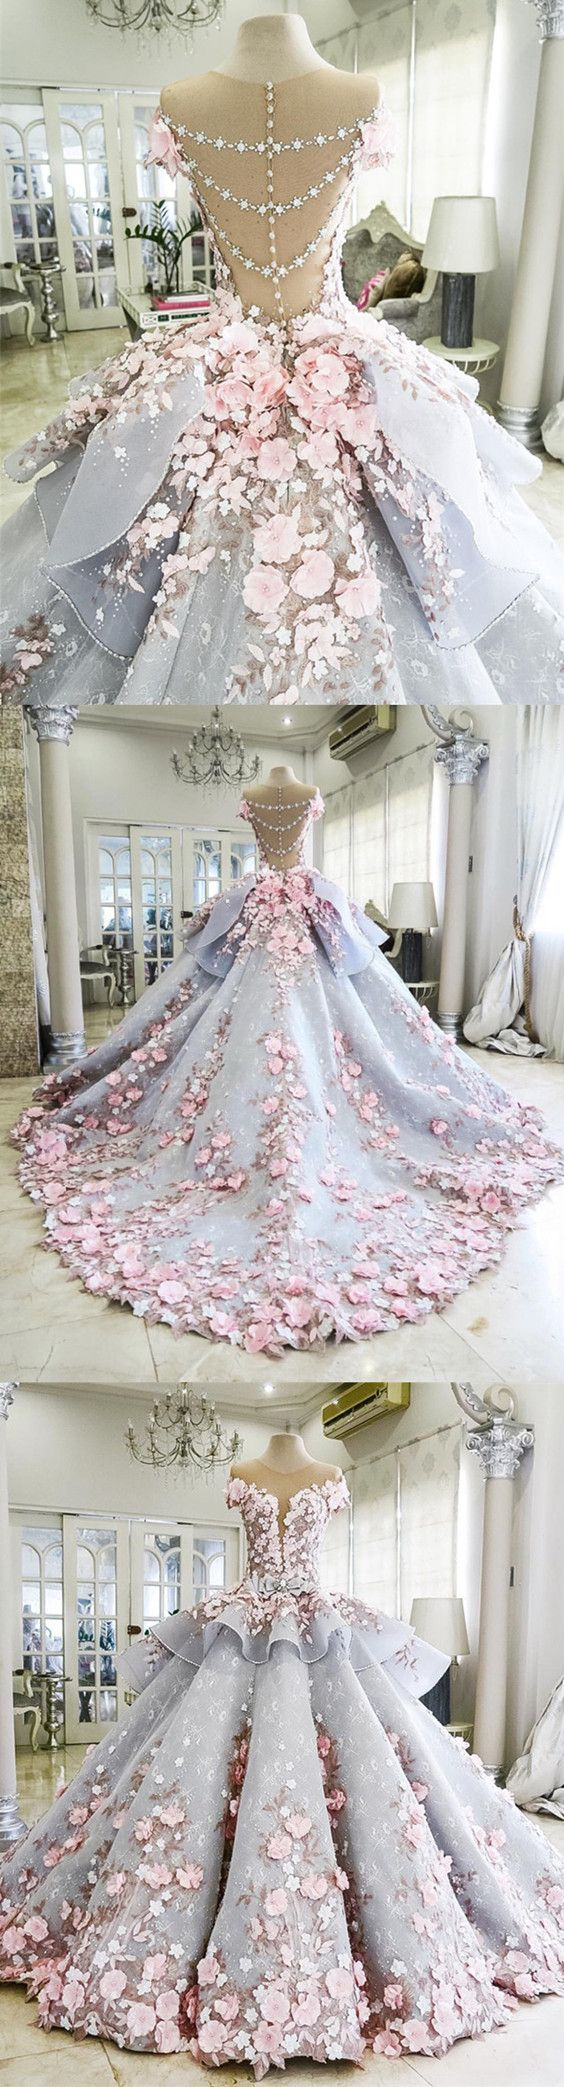 Pink Floral Flowers Beaded Lace Ball Gowns Light Blue Wedding